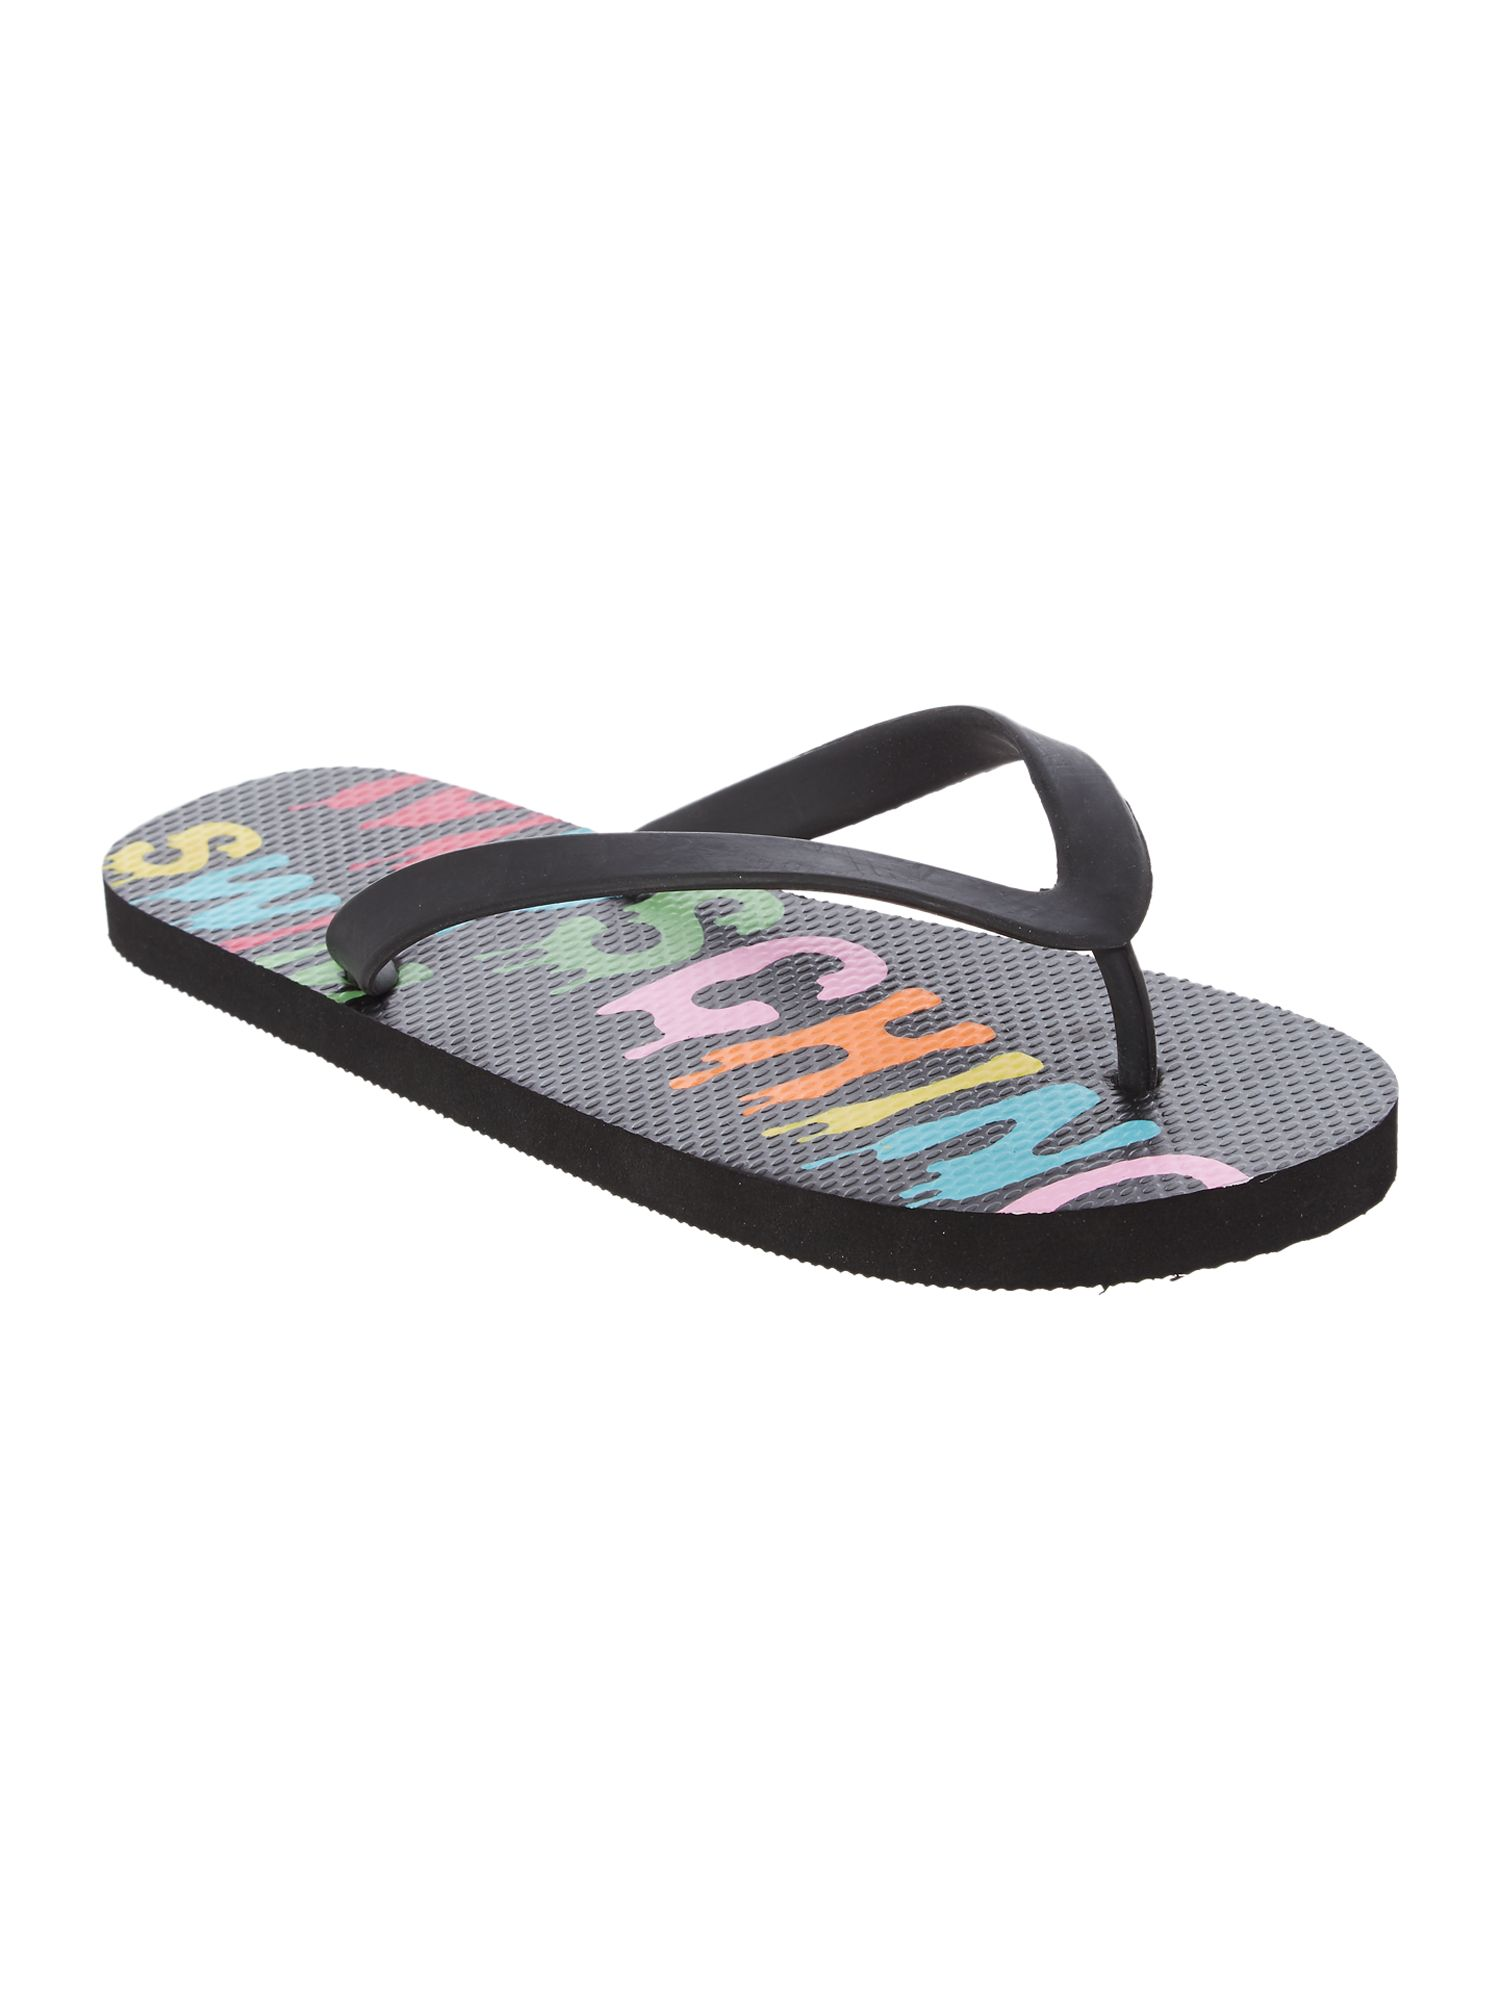 Men's Moschino Logo Flip Flop, Multi-Coloured